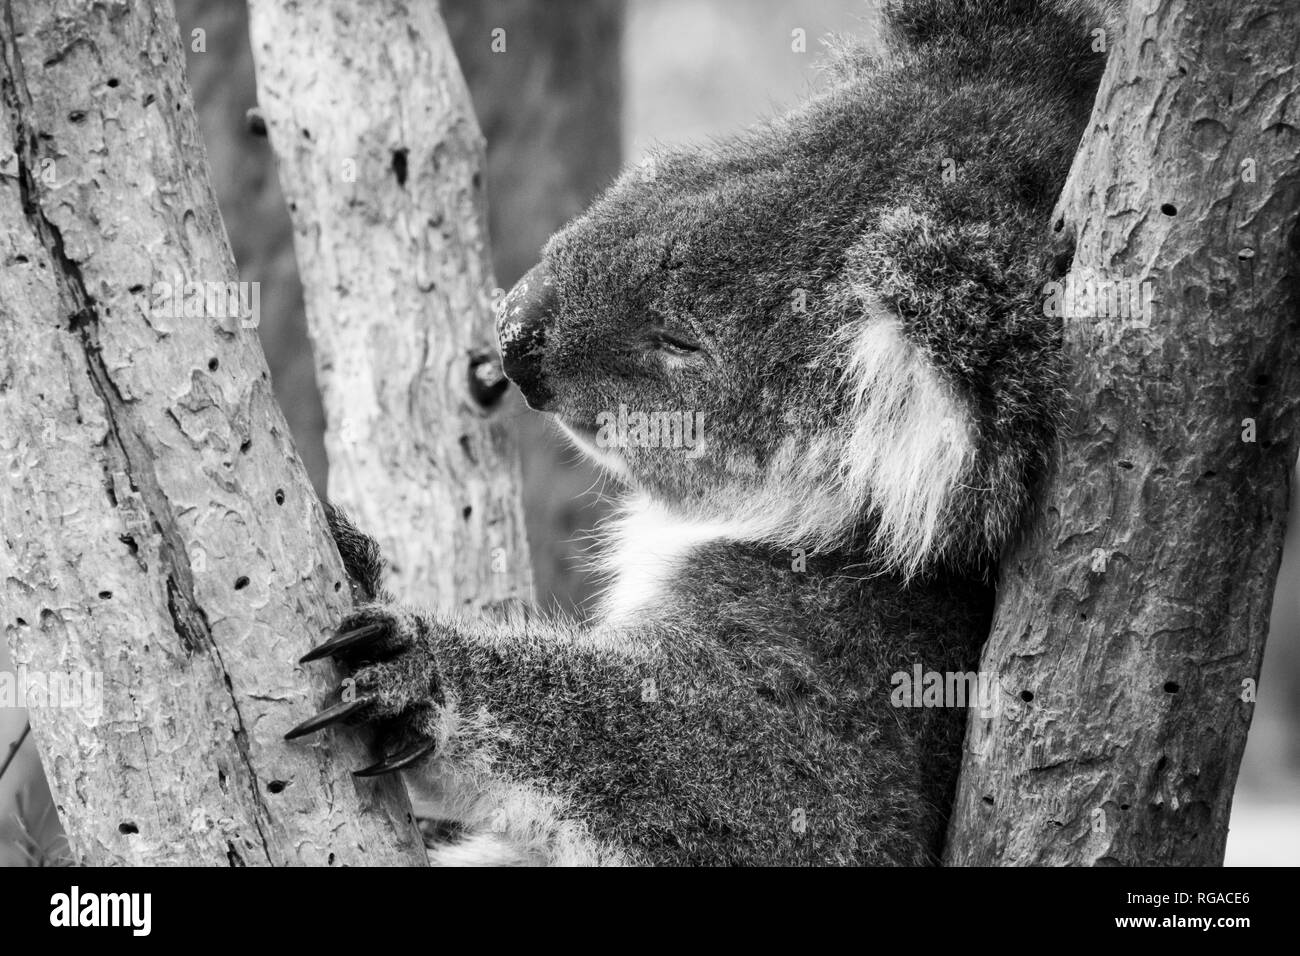 Black and white of koala bear in Australia sleeping in tree holding himself with his black long claws - Stock Image